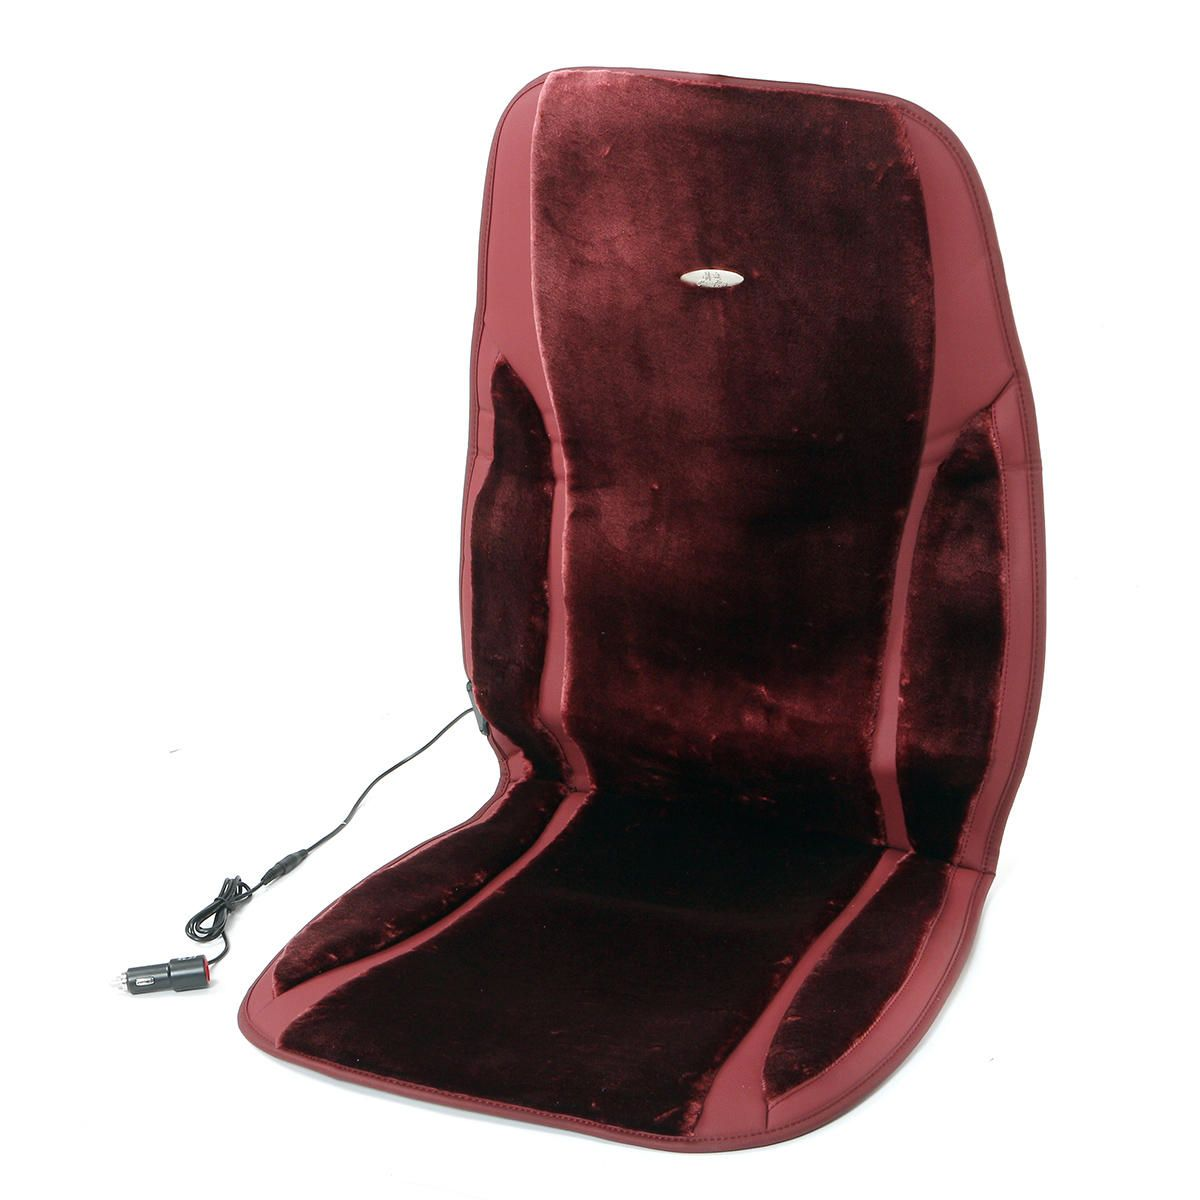 XGY US$37.99 Universal Heated Winter Car Seat Cover Cushion Protector Heater Warmer Third Gear Heating 5 Mode Massage Set Leather Velour Fabric 12V